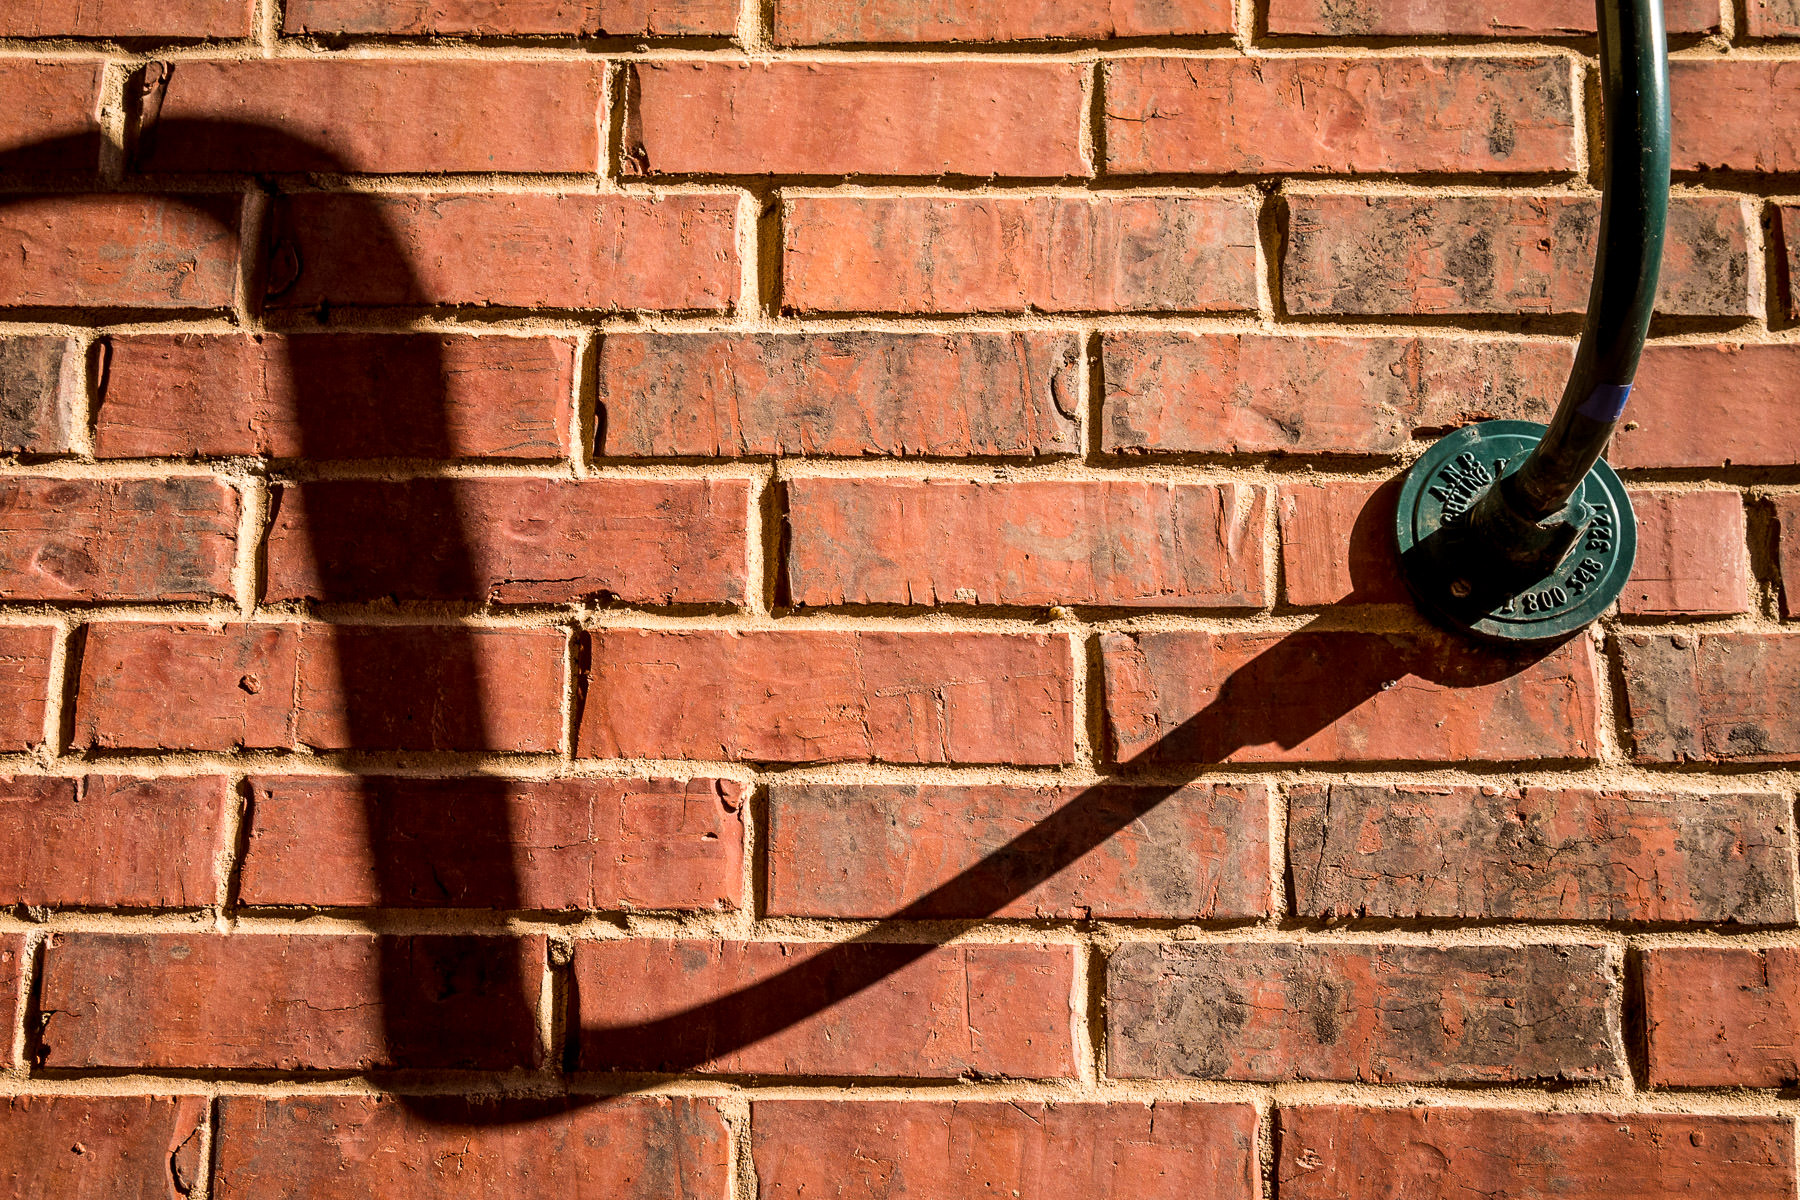 A lamp throws a shadow onto a brick wall at Eastside Village in Downtown Plano, Texas.